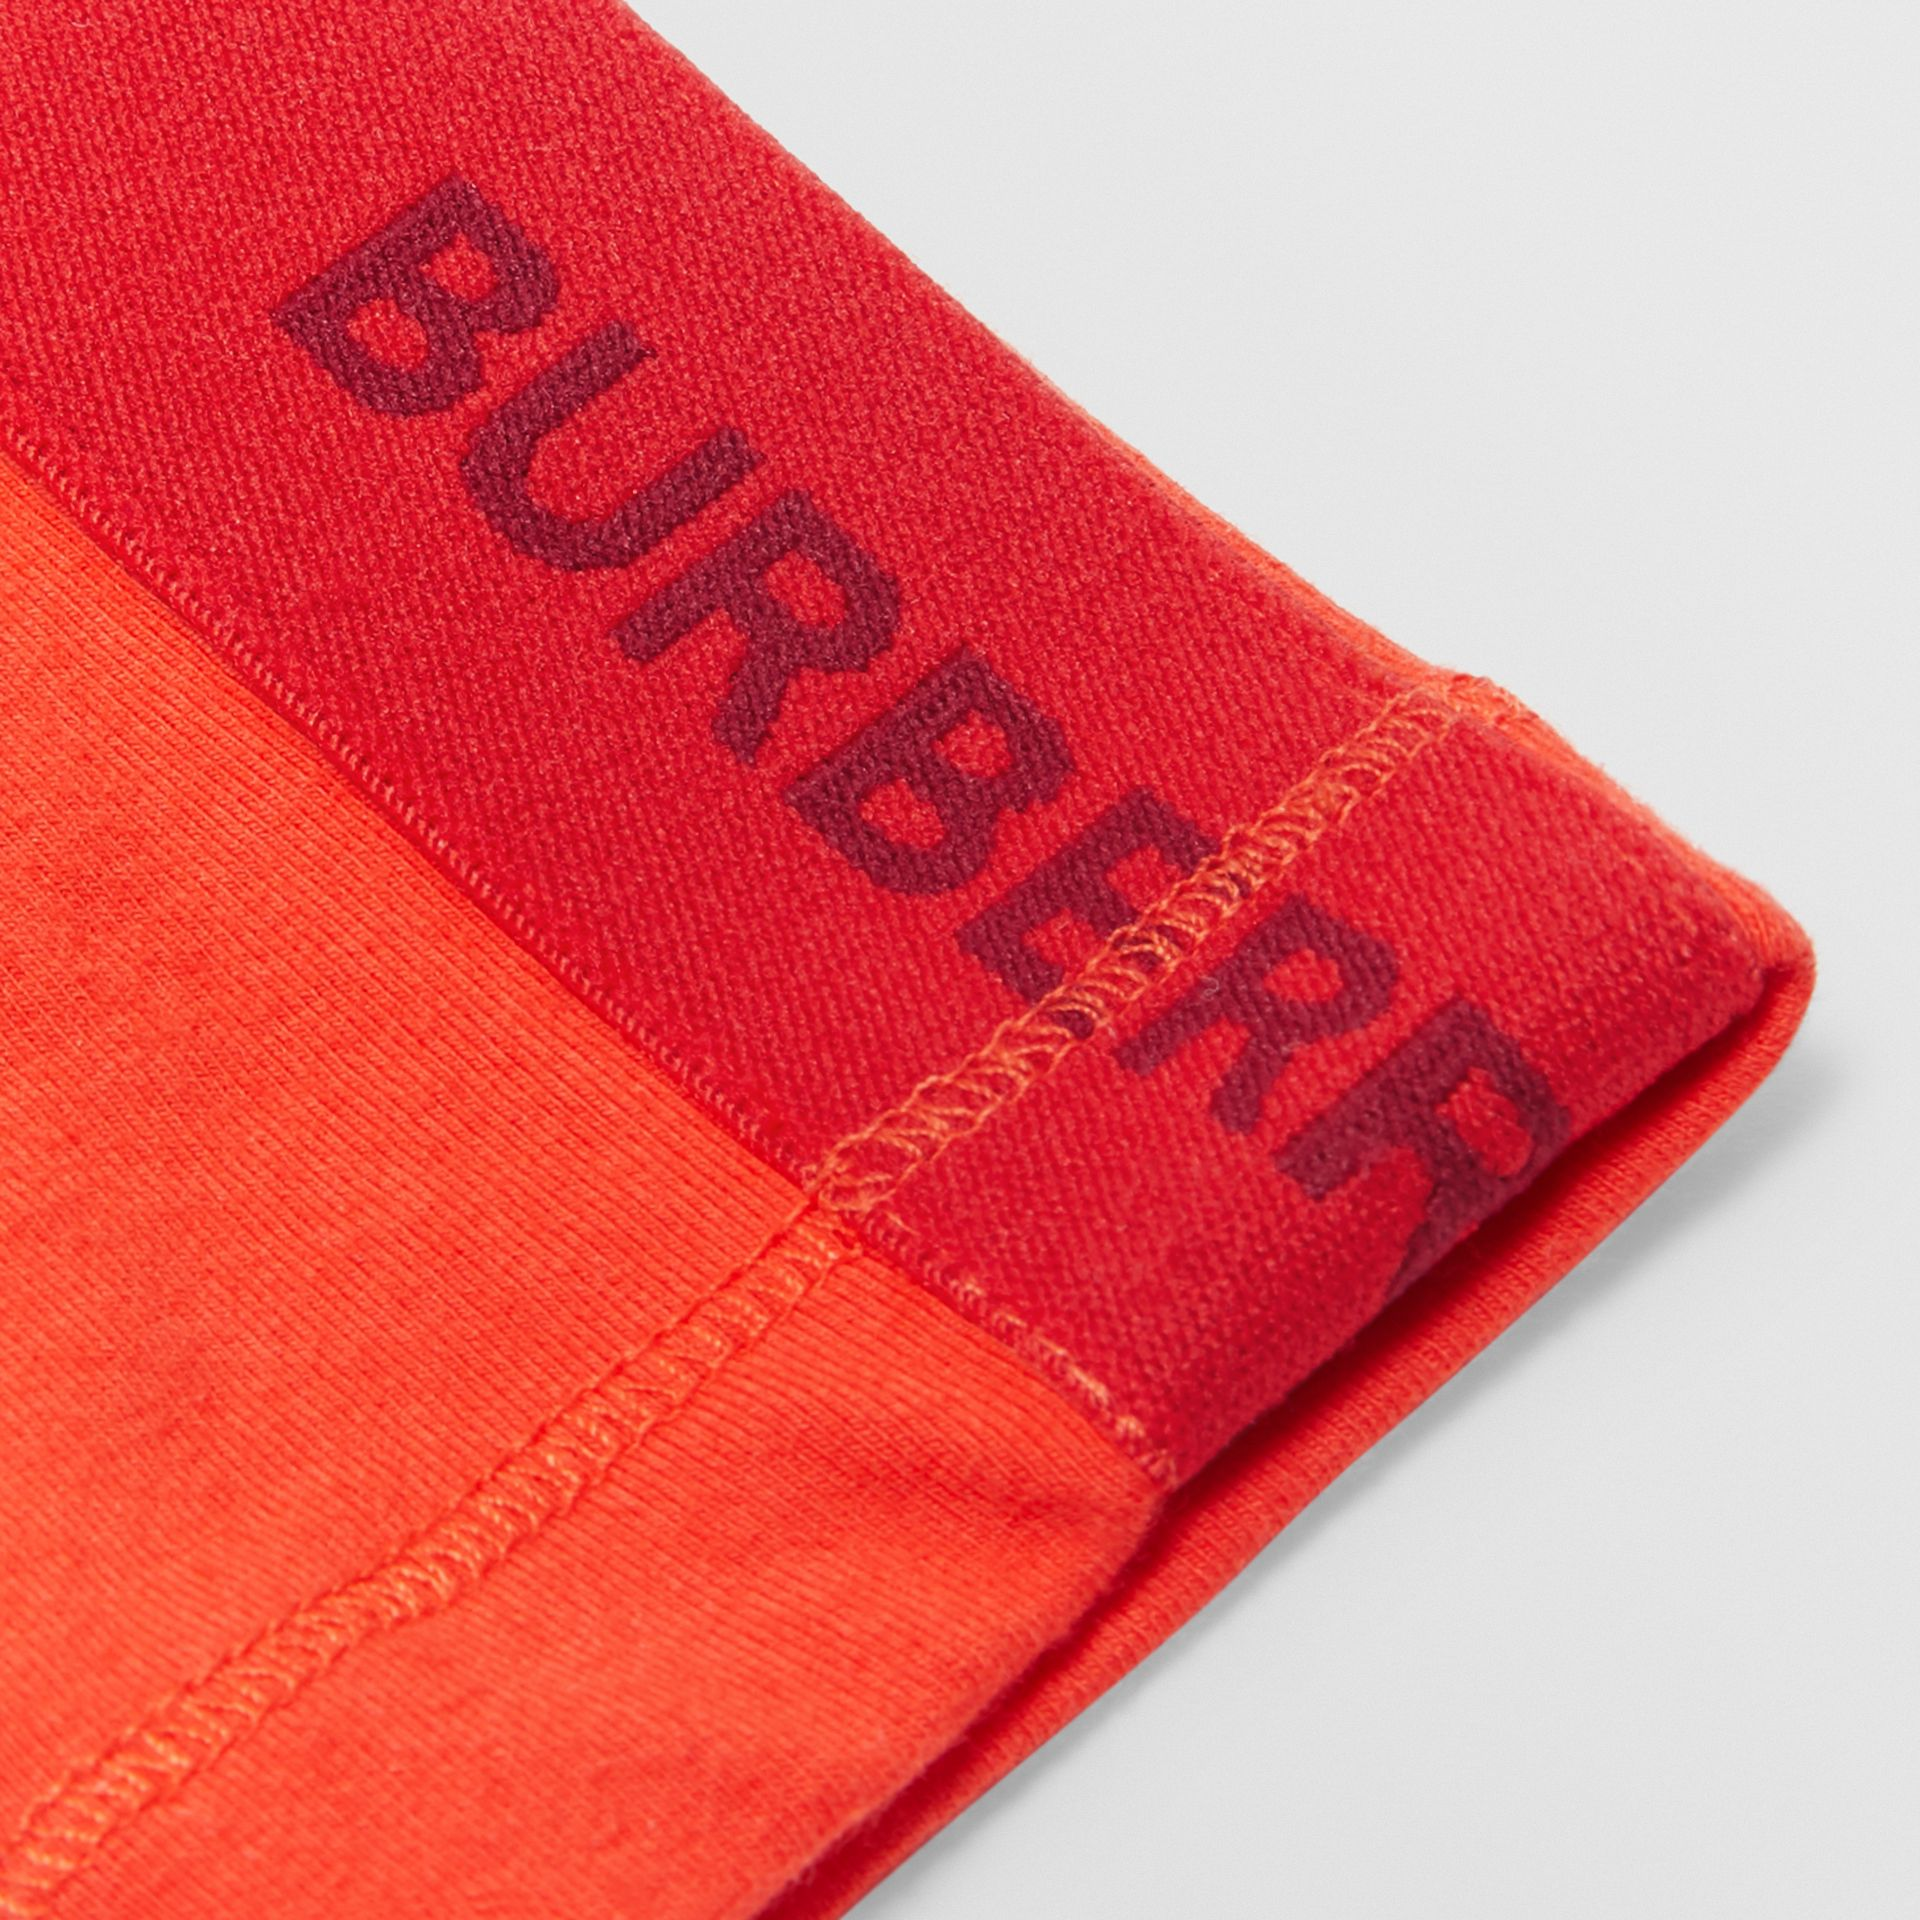 Logo Detail Stretch Cotton Leggings in Bright Red - Children | Burberry Hong Kong S.A.R - gallery image 1